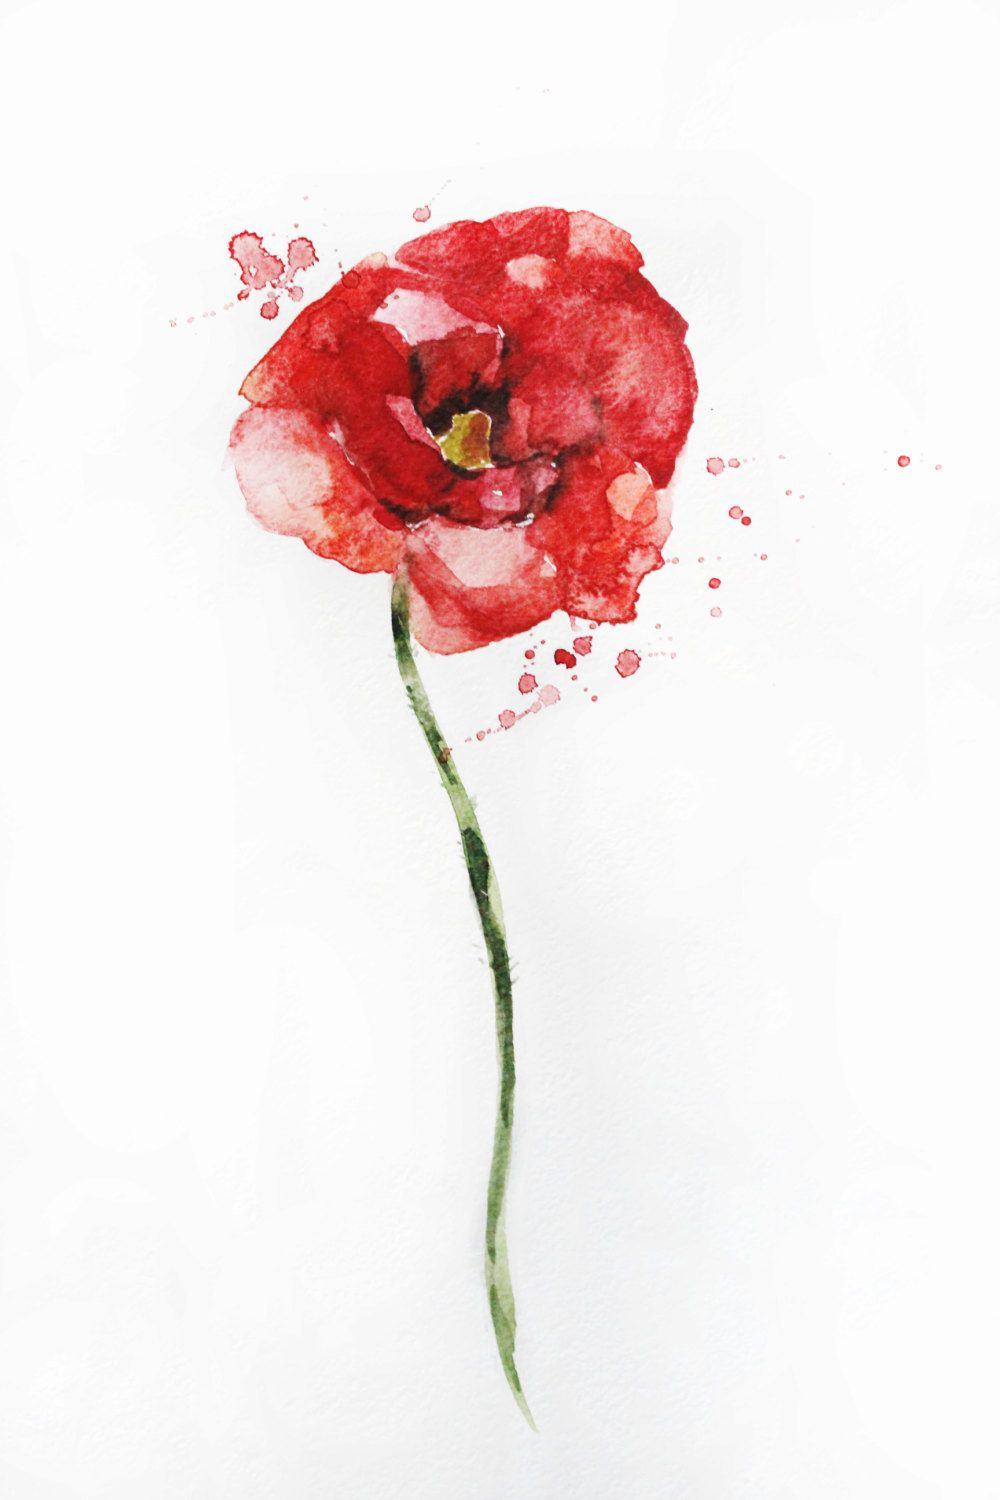 Poppy original watercolor sale painting poppy flowers art wall decor sale original watercolor poppy painting poppies flowers decor red art wall decor mightylinksfo